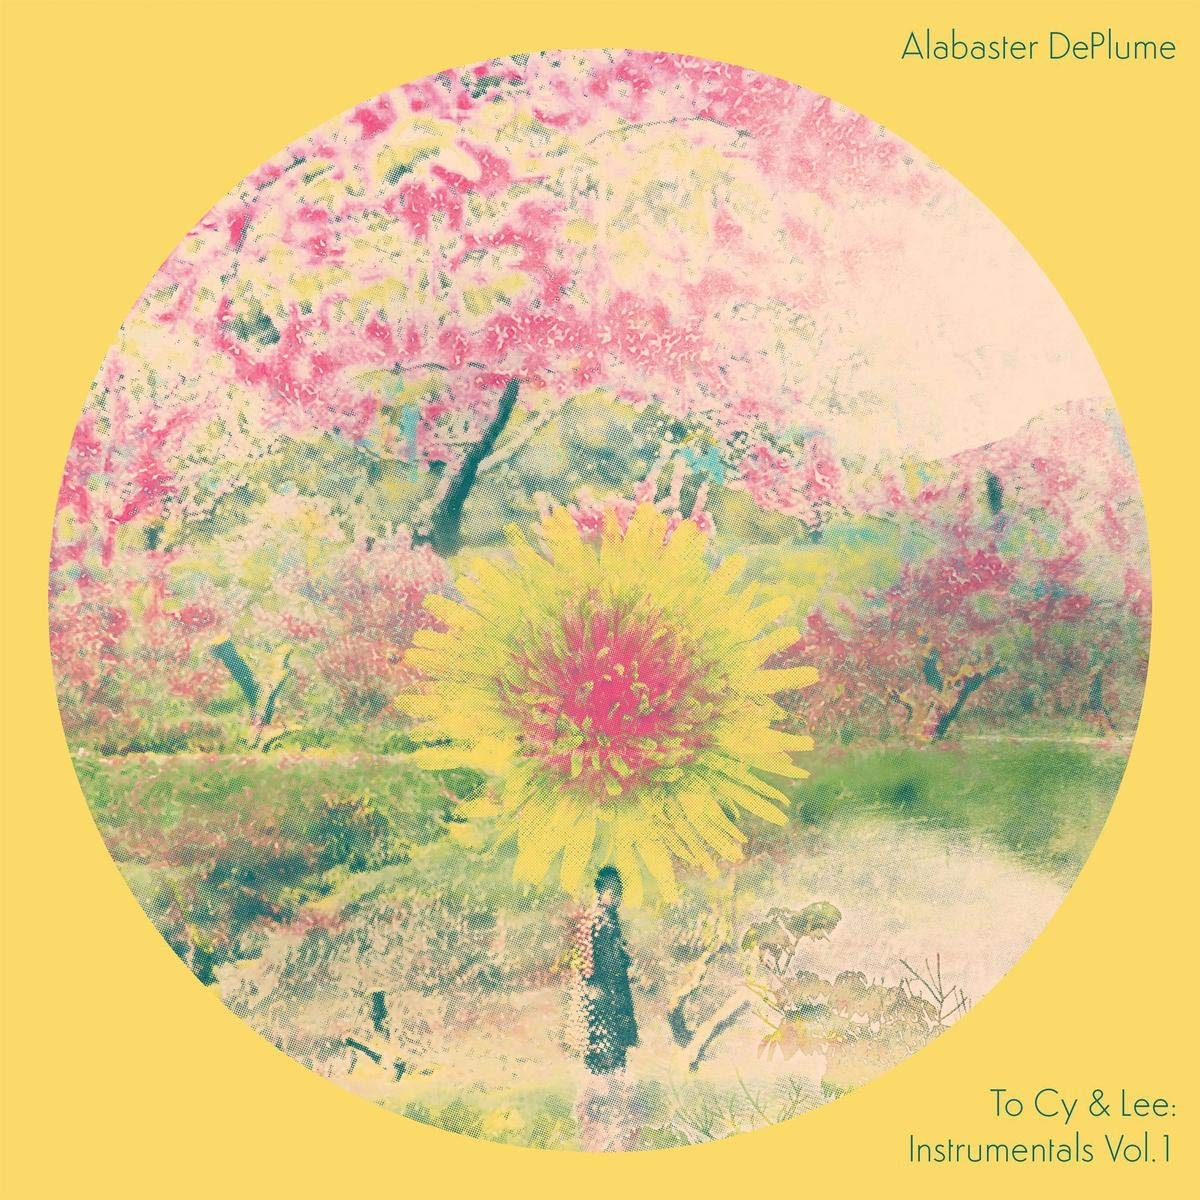 Buy Alabaster Deplume ~ To Cy & Lee: Instrumentals, Vol. 1 New or Used via Amazon